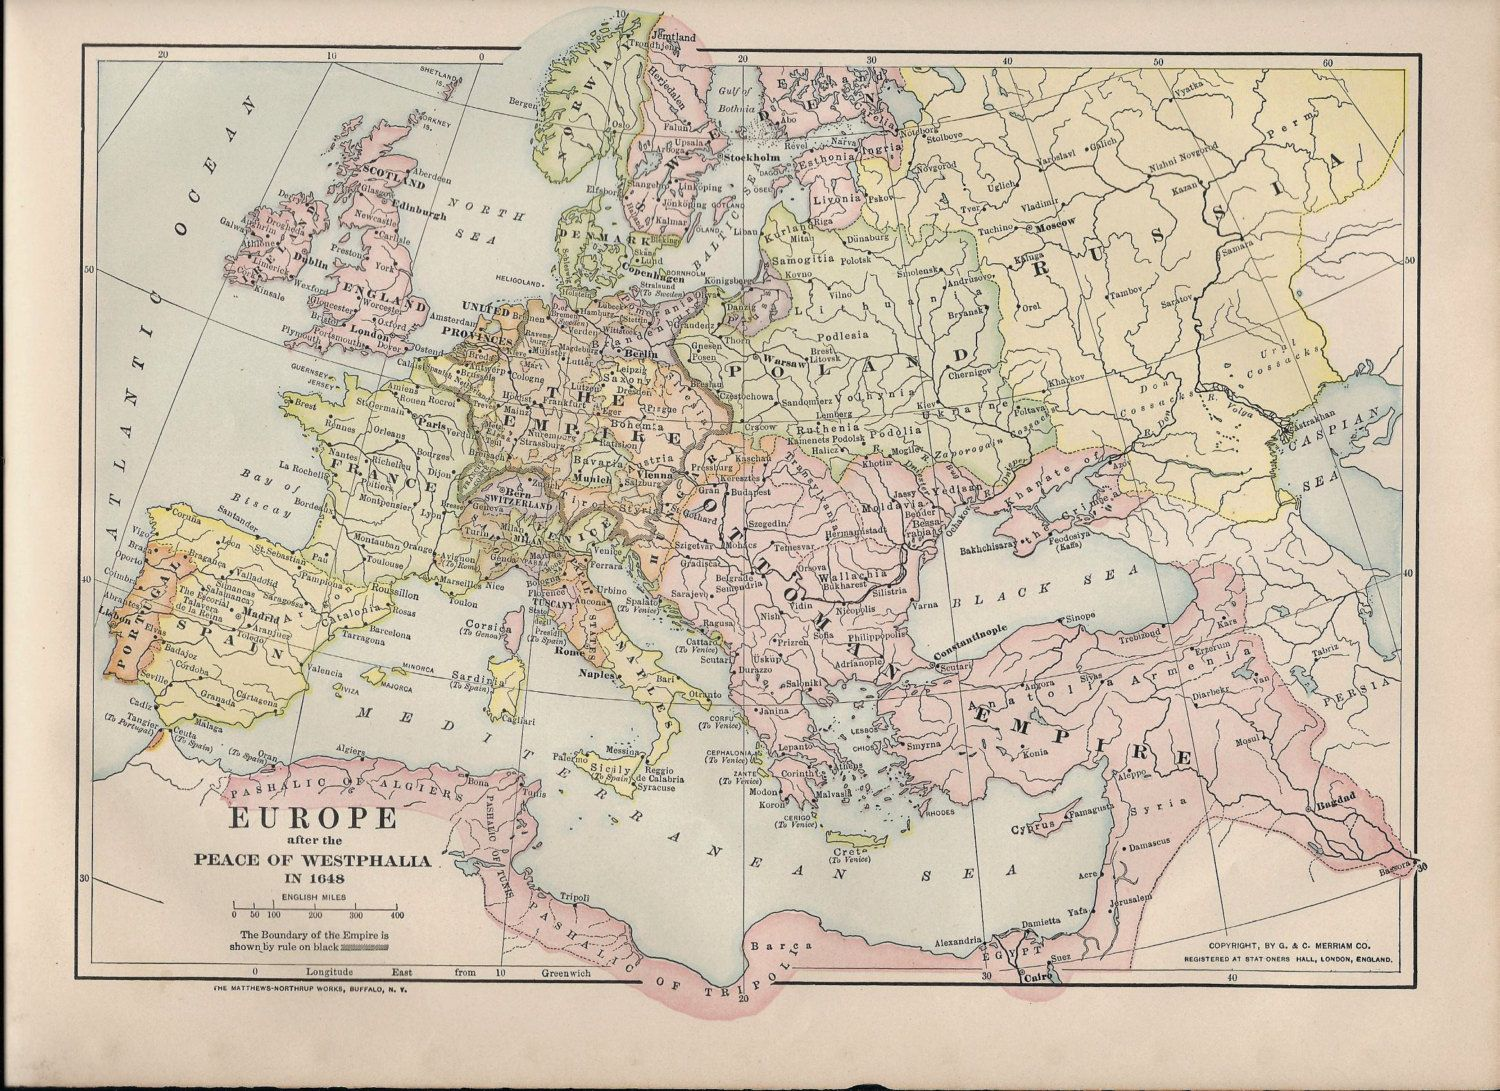 Antique Map Europe In After The Peace Of Westphalia - Europe map 1648 westphalia